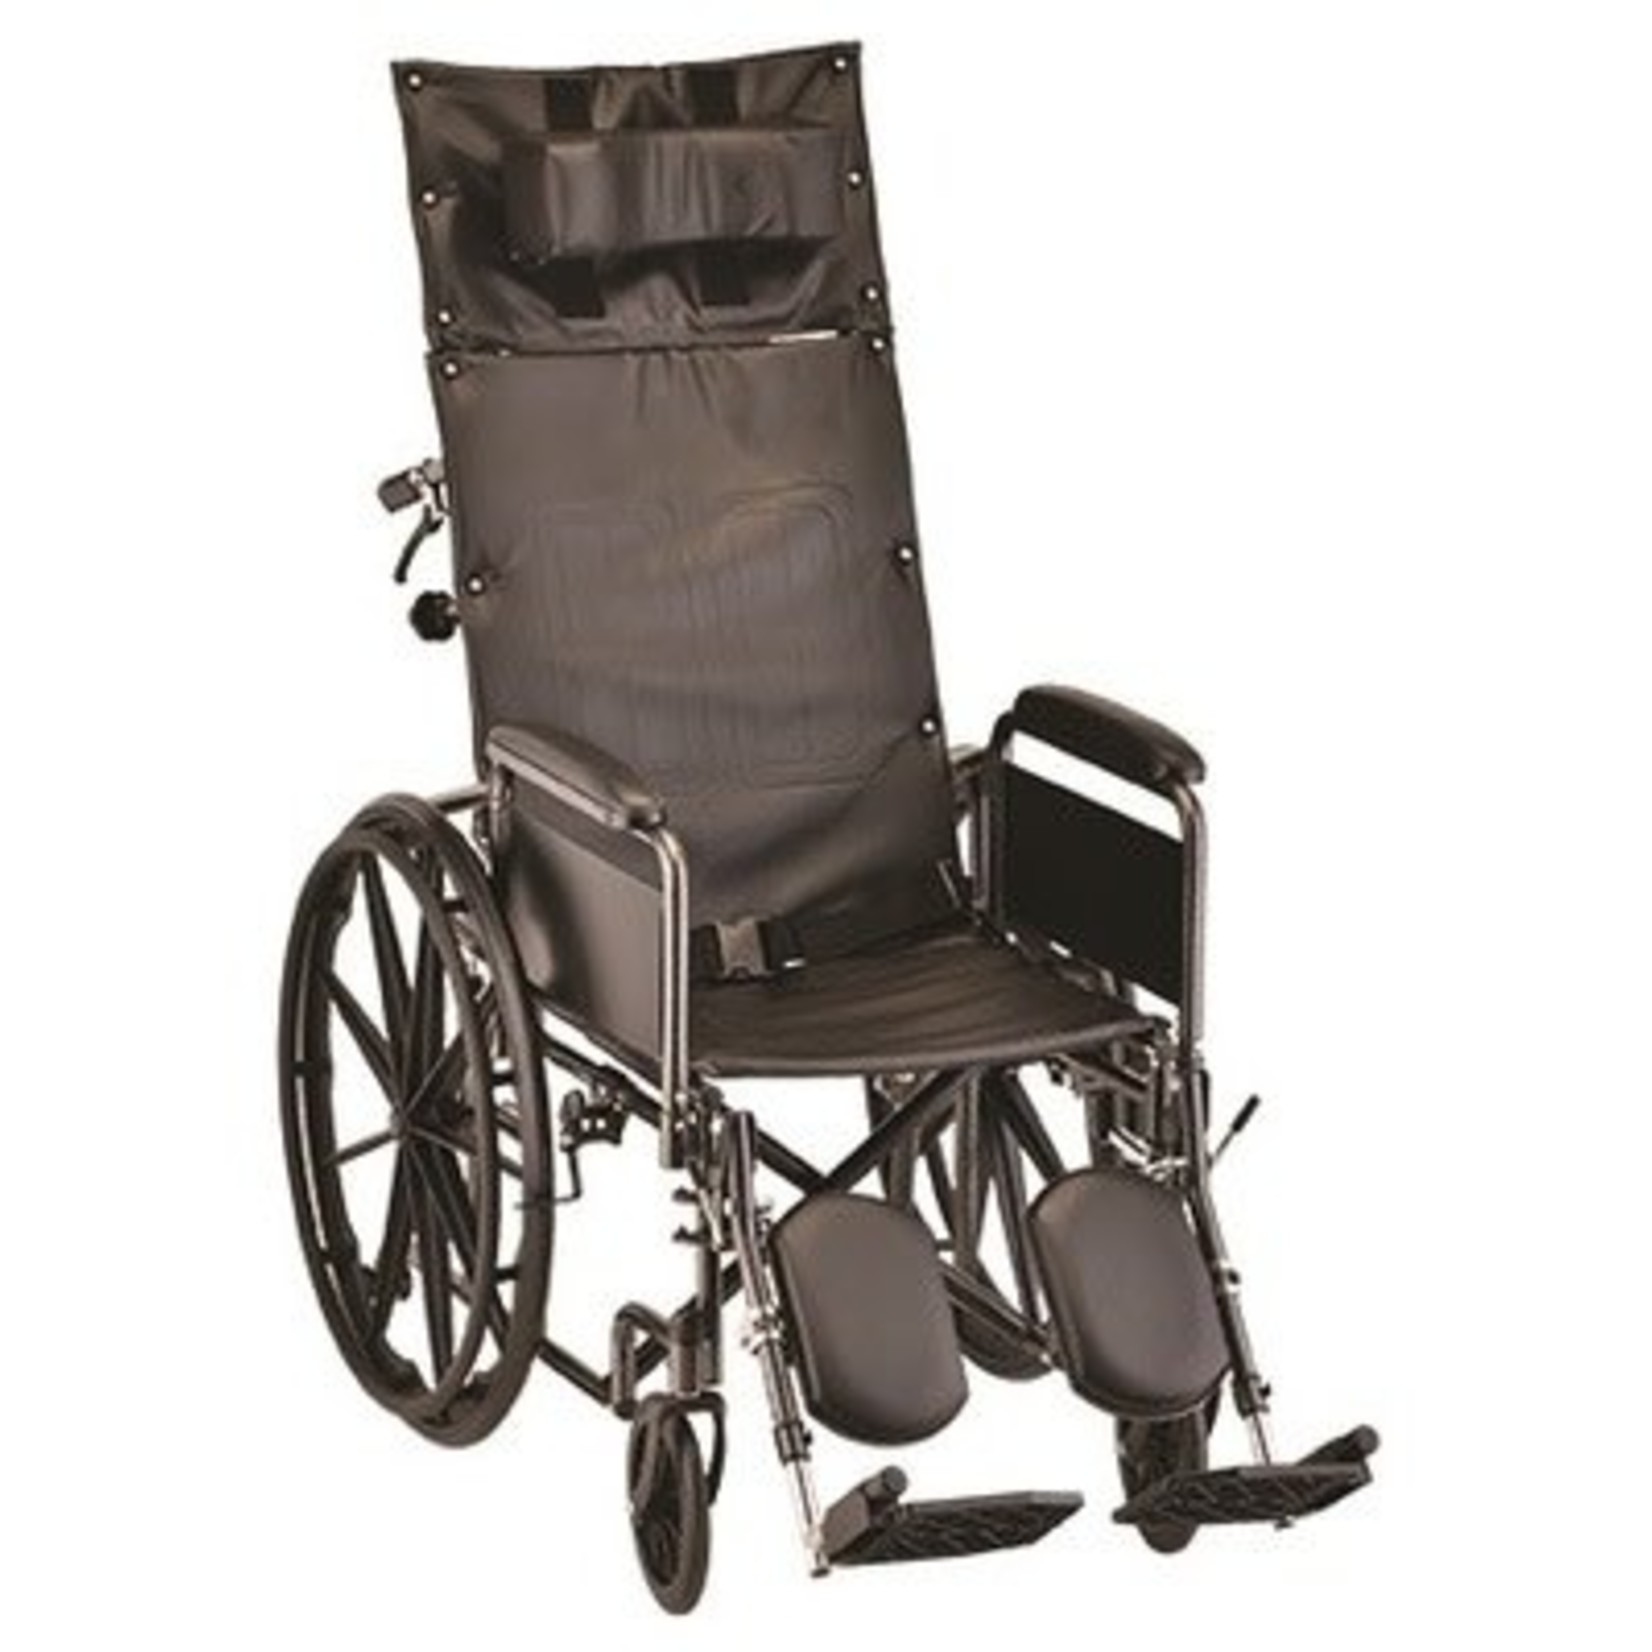 Reclining Wheelchair - Rental Reservation in Eastern Palm Beach County